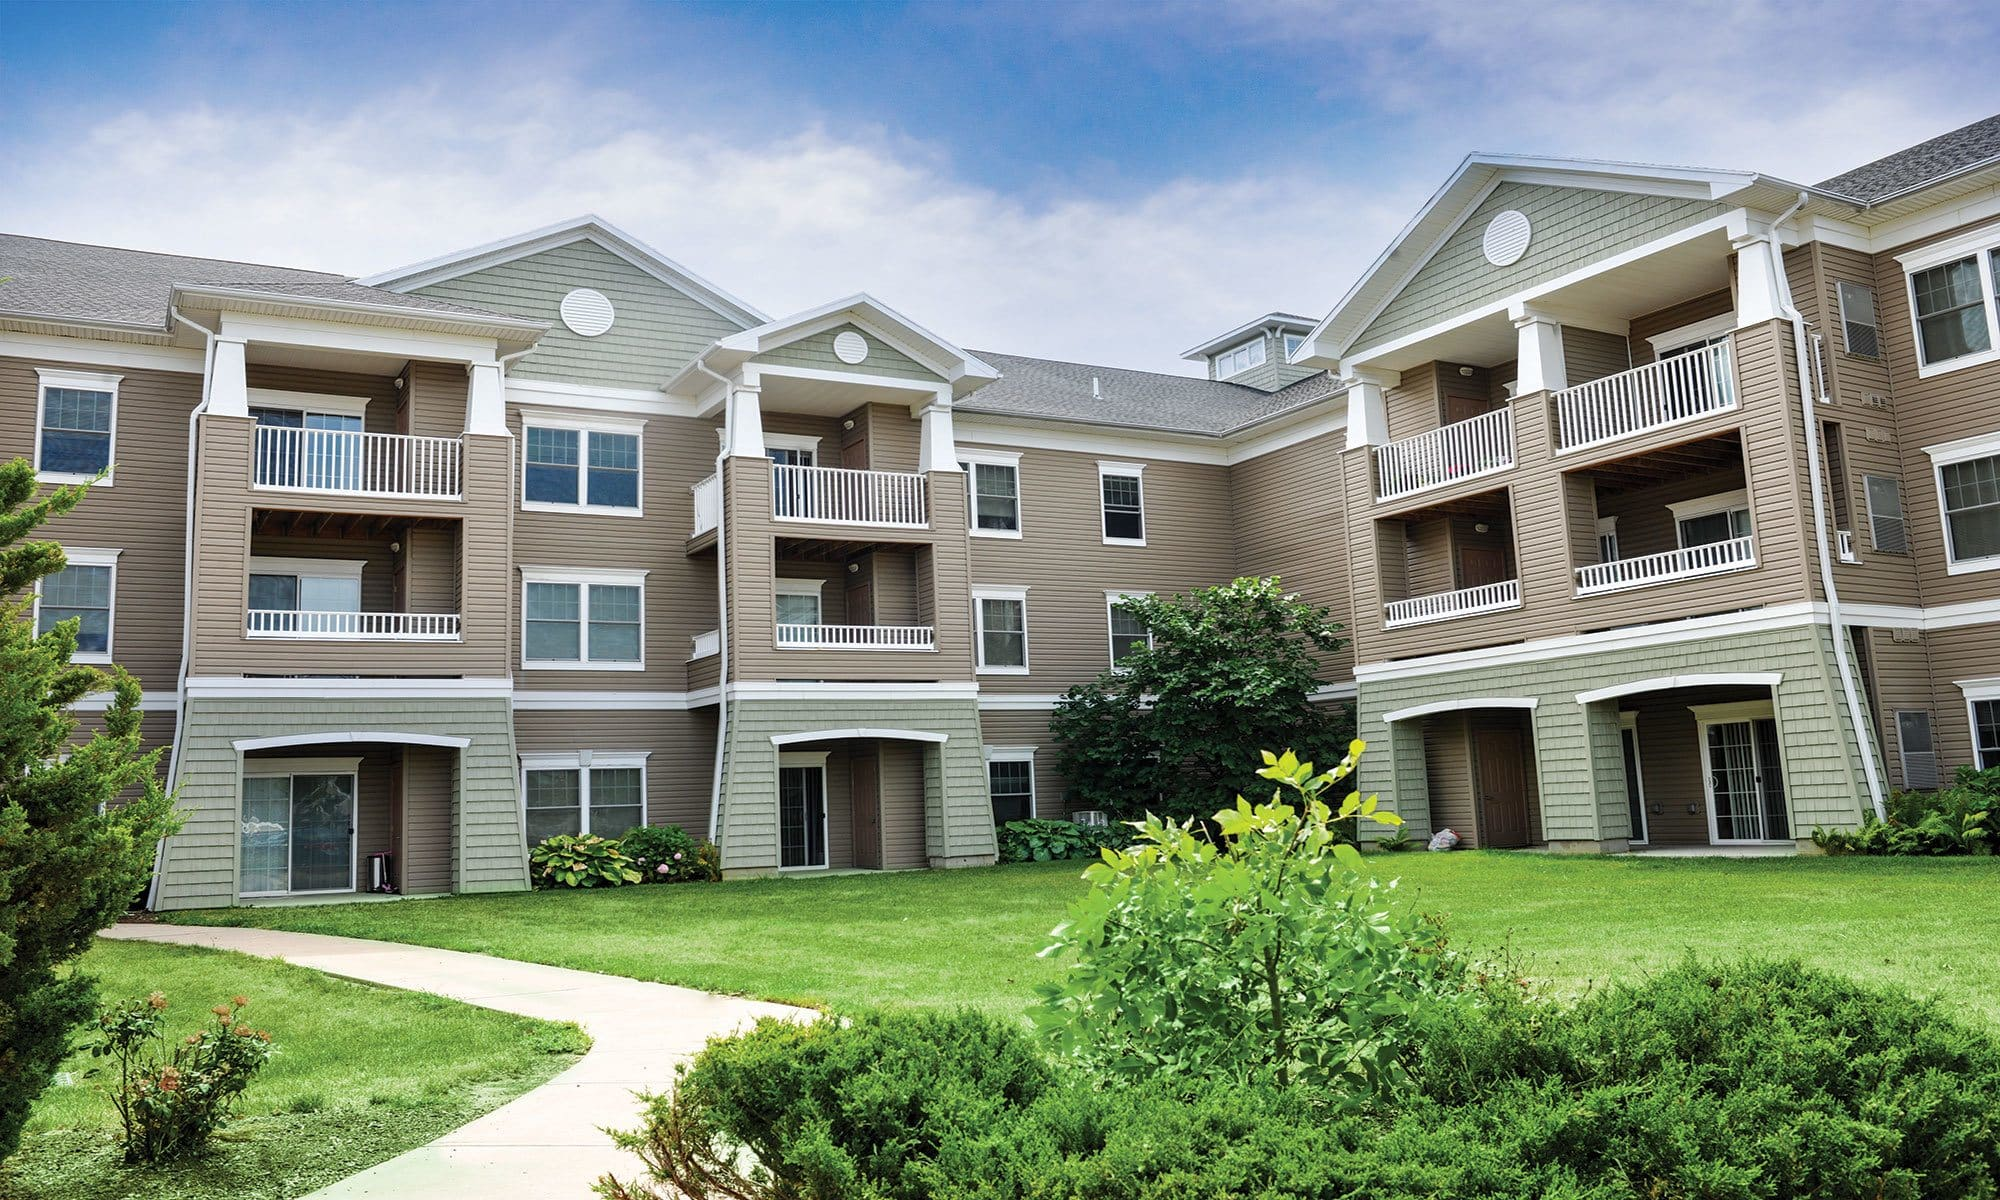 Welcome to Greenwood Cove Apartments in Rochester, NY